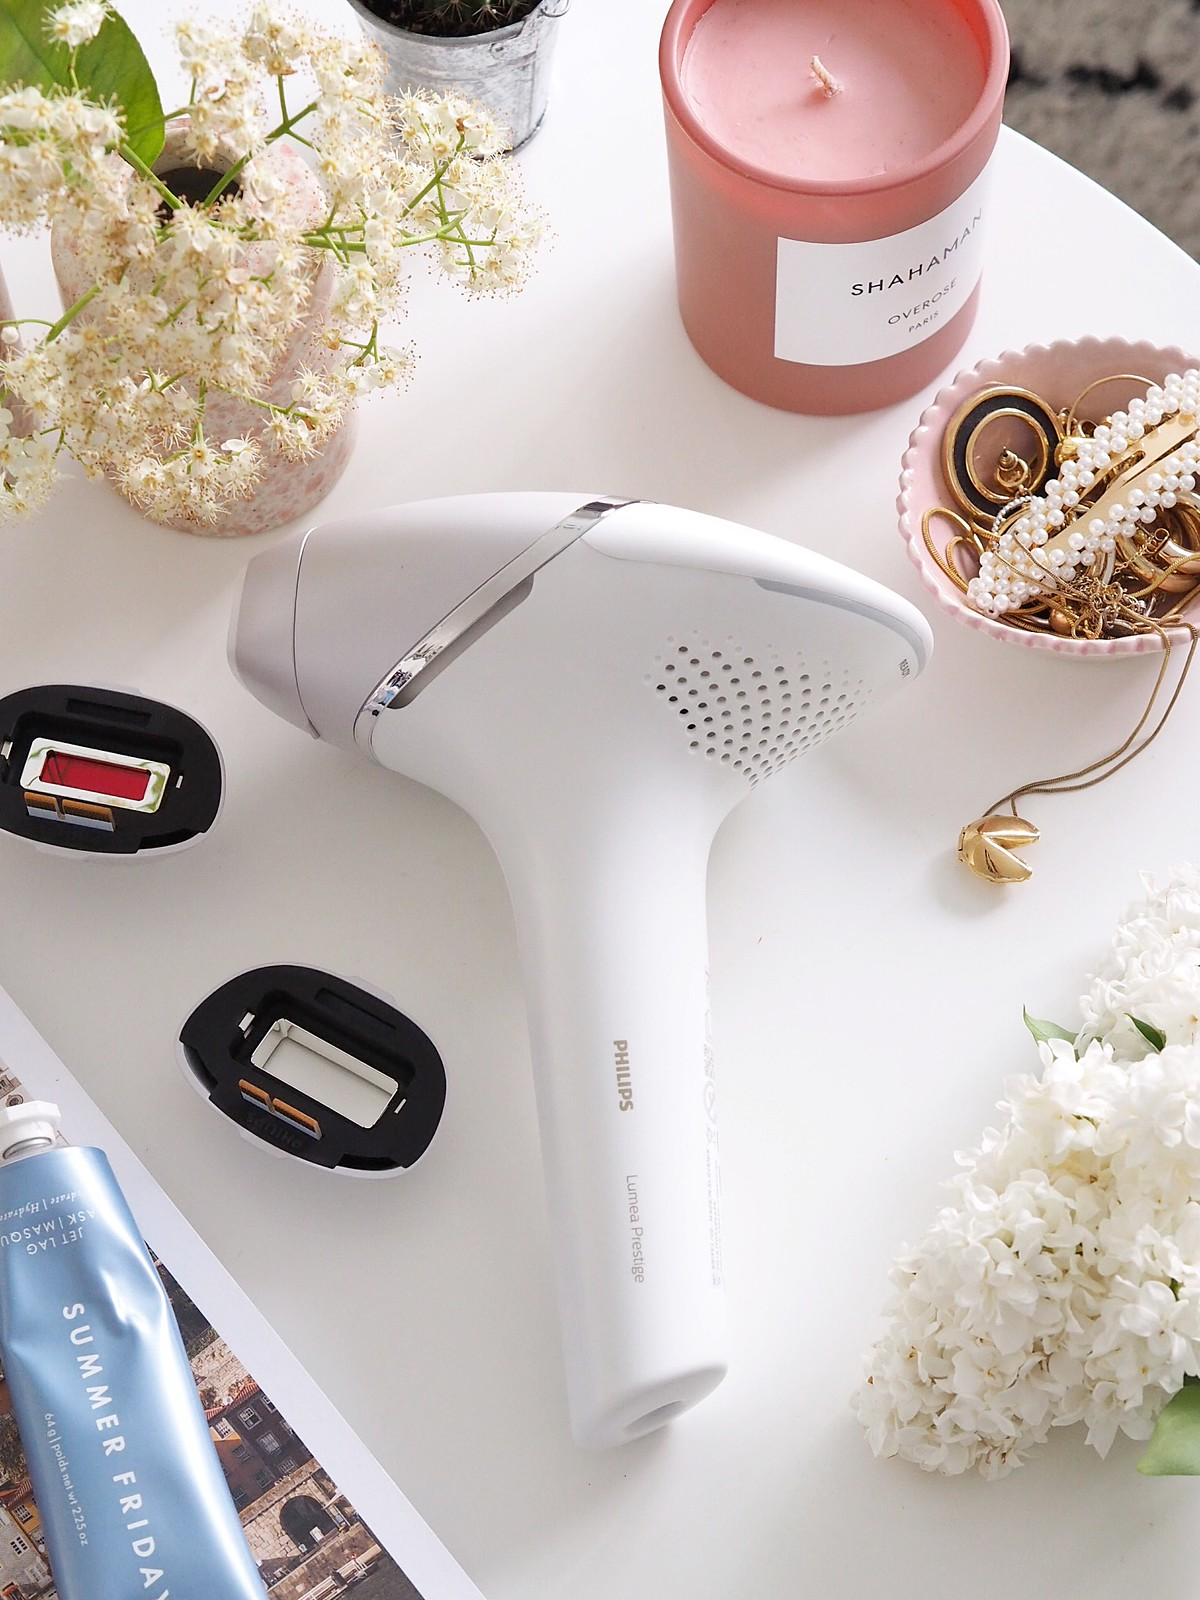 philips lumea ipl review 2